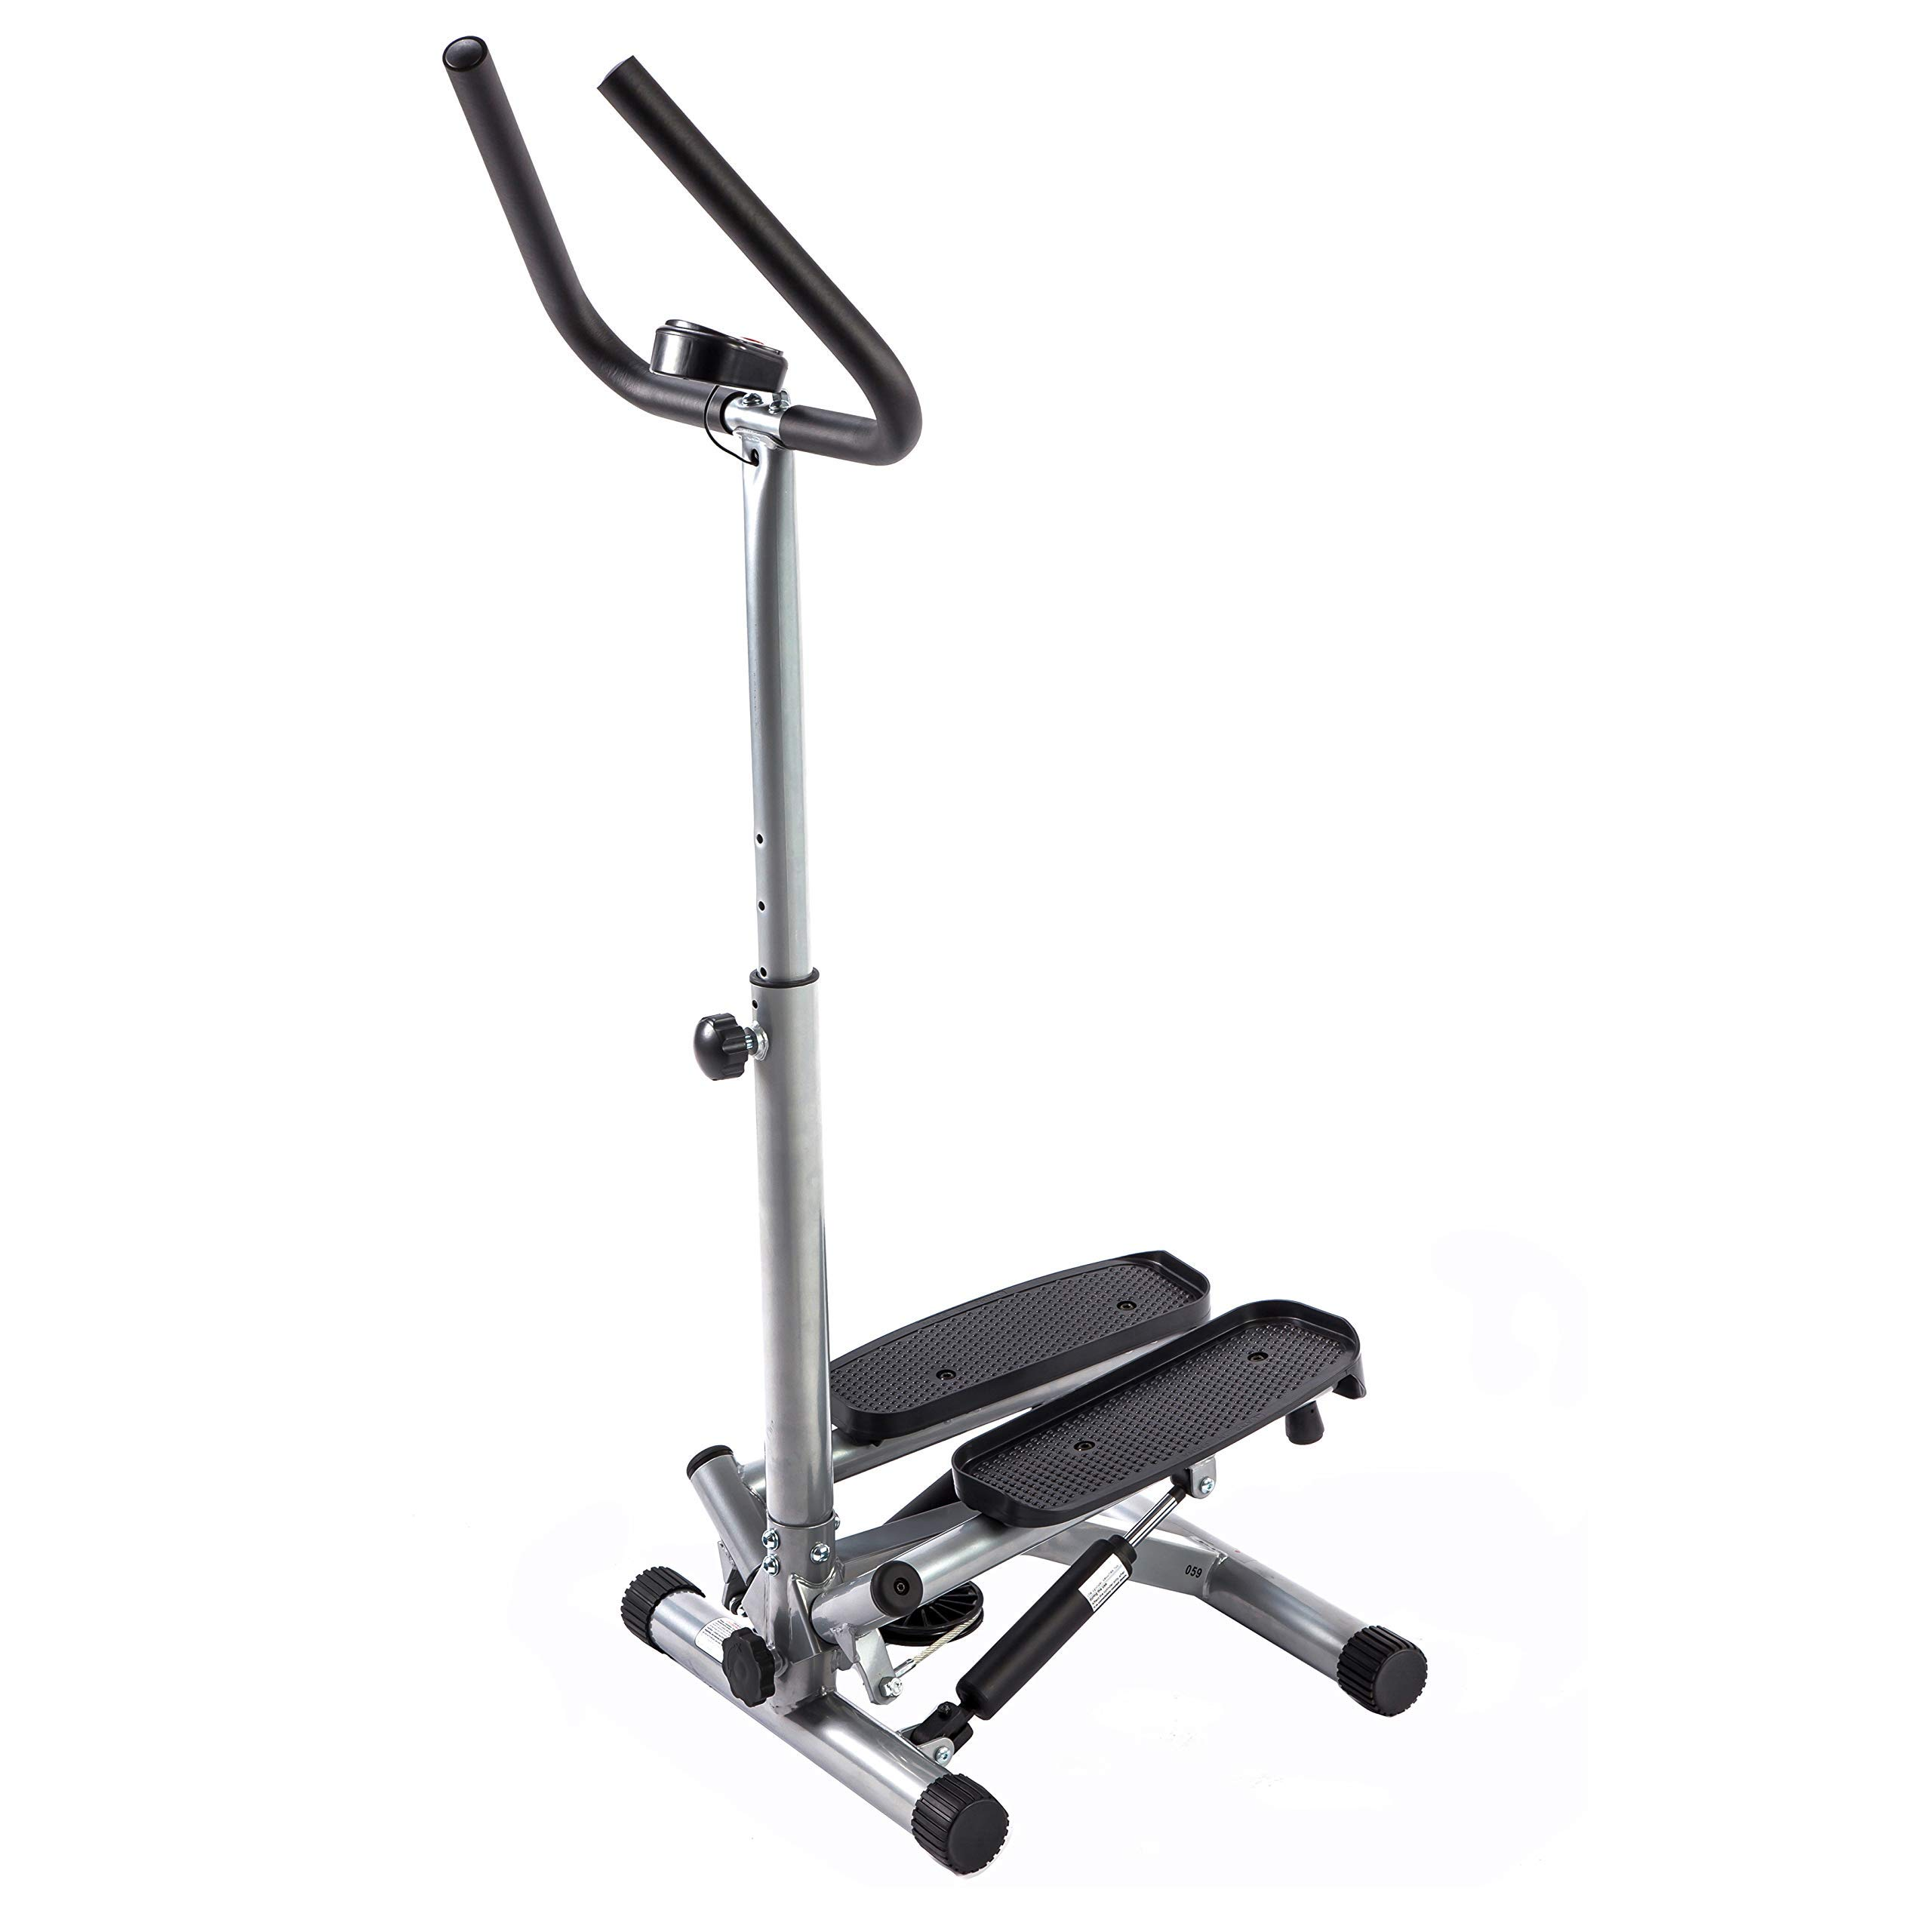 Sunny Health & Fitness NO. 059 Twist Stepper Step Machine w/Handle Bar and LCD Monitor (Renewed) by Sunny Health & Fitness (Image #2)